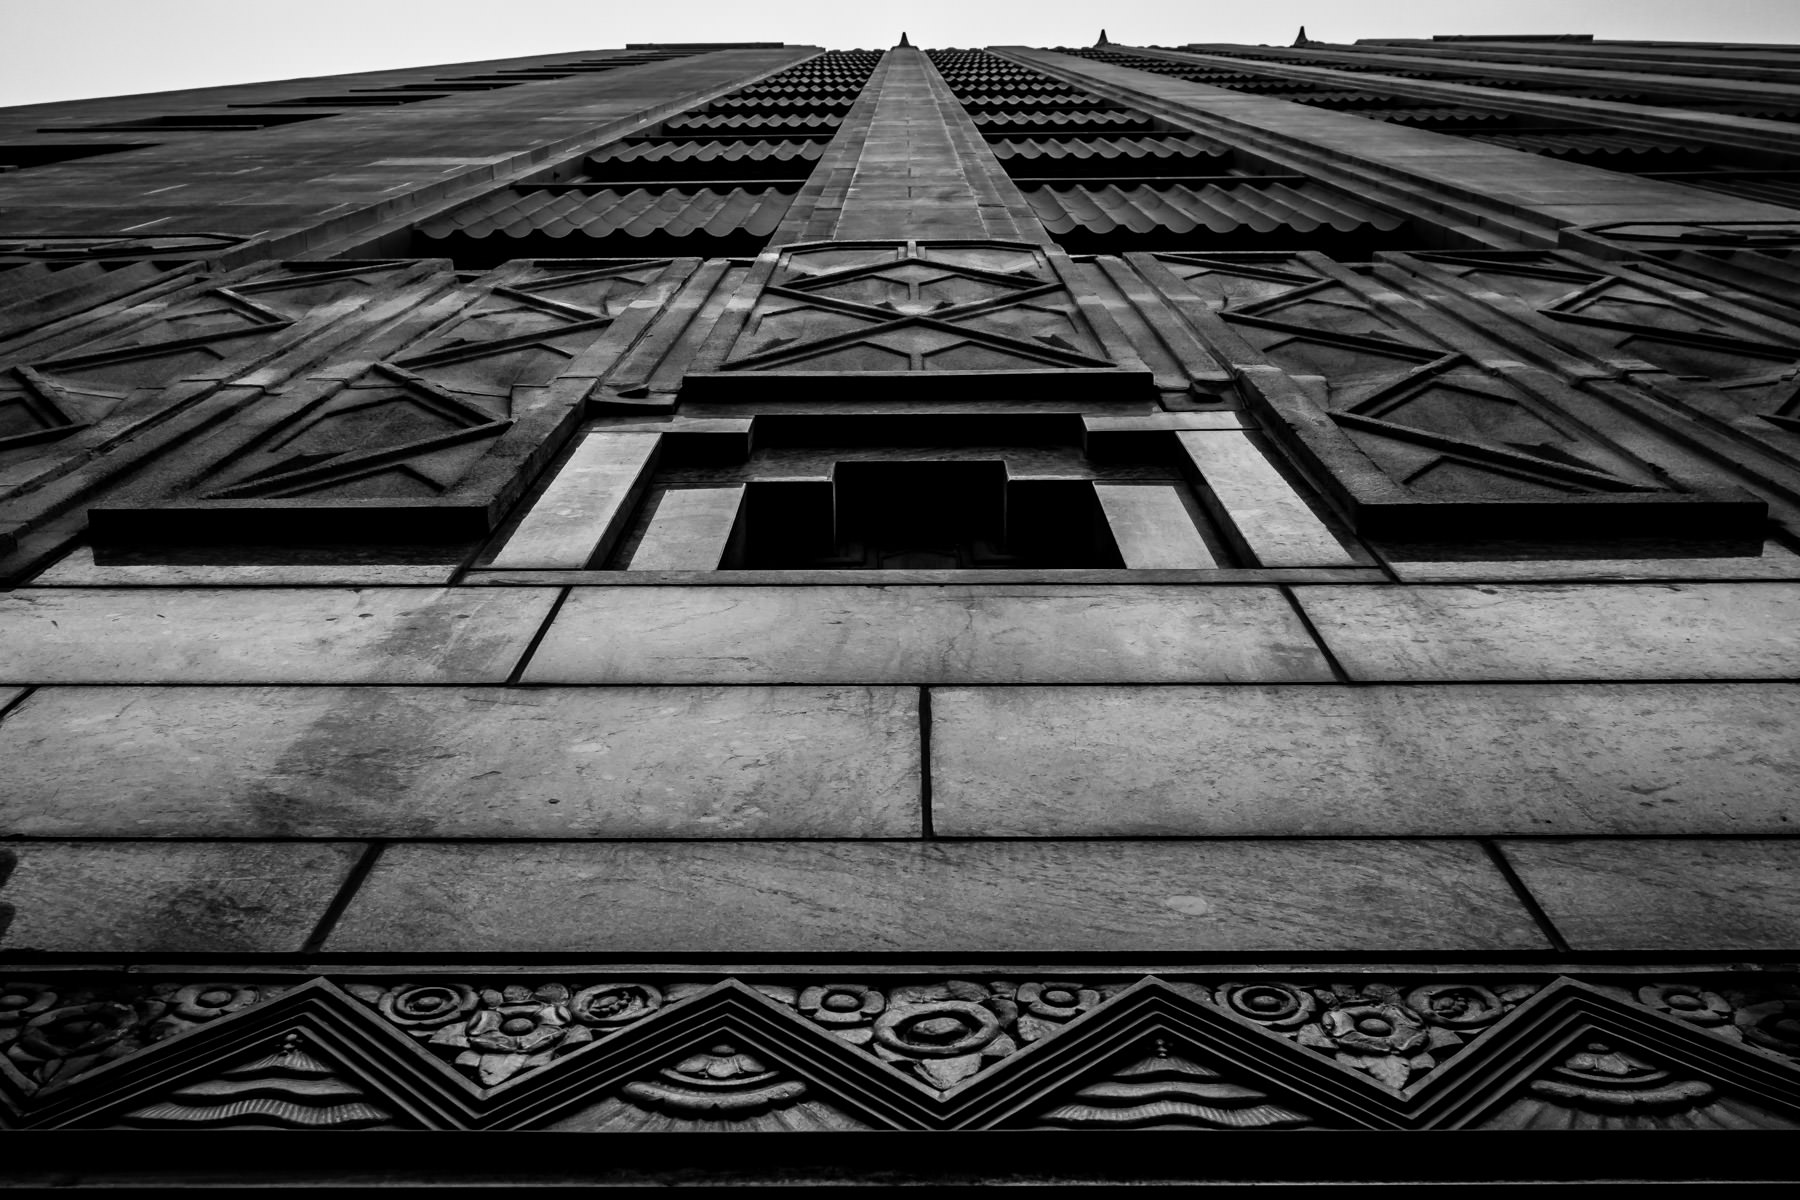 Exterior architectural detail of Downtown Fort Worth, Texas' Sinclair Building, built in 1930 and once the headquarters of the Sinclair-Prairie Oil Company.